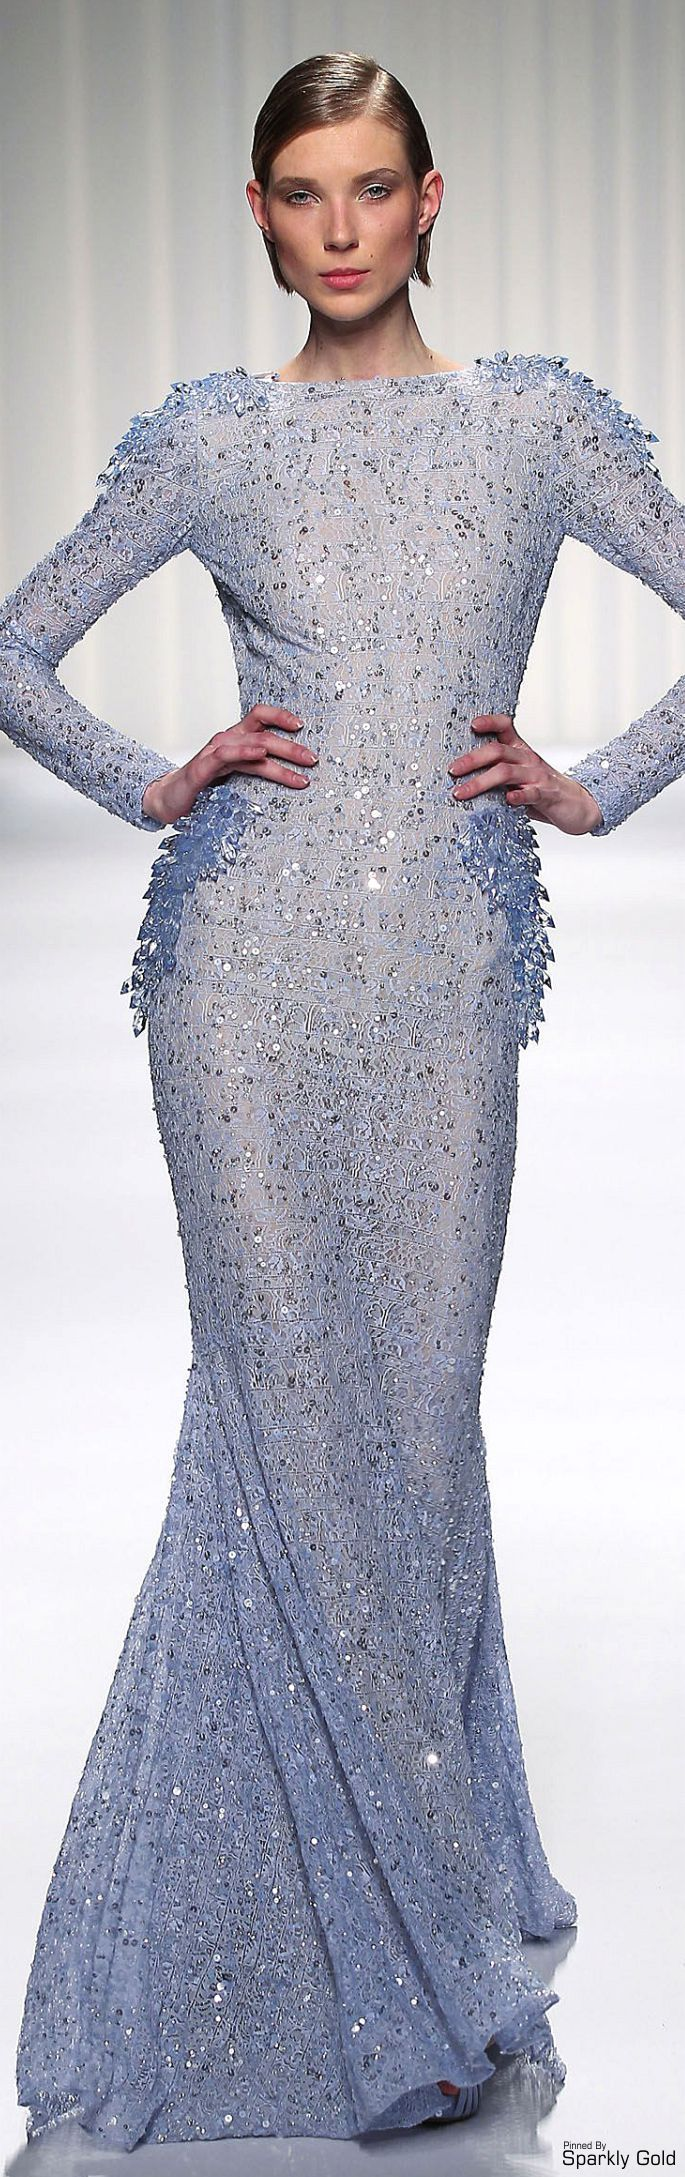 Abed Mahfouz ~ Couture Lavender Long Sleeve Sequin Embellished Gown 2015